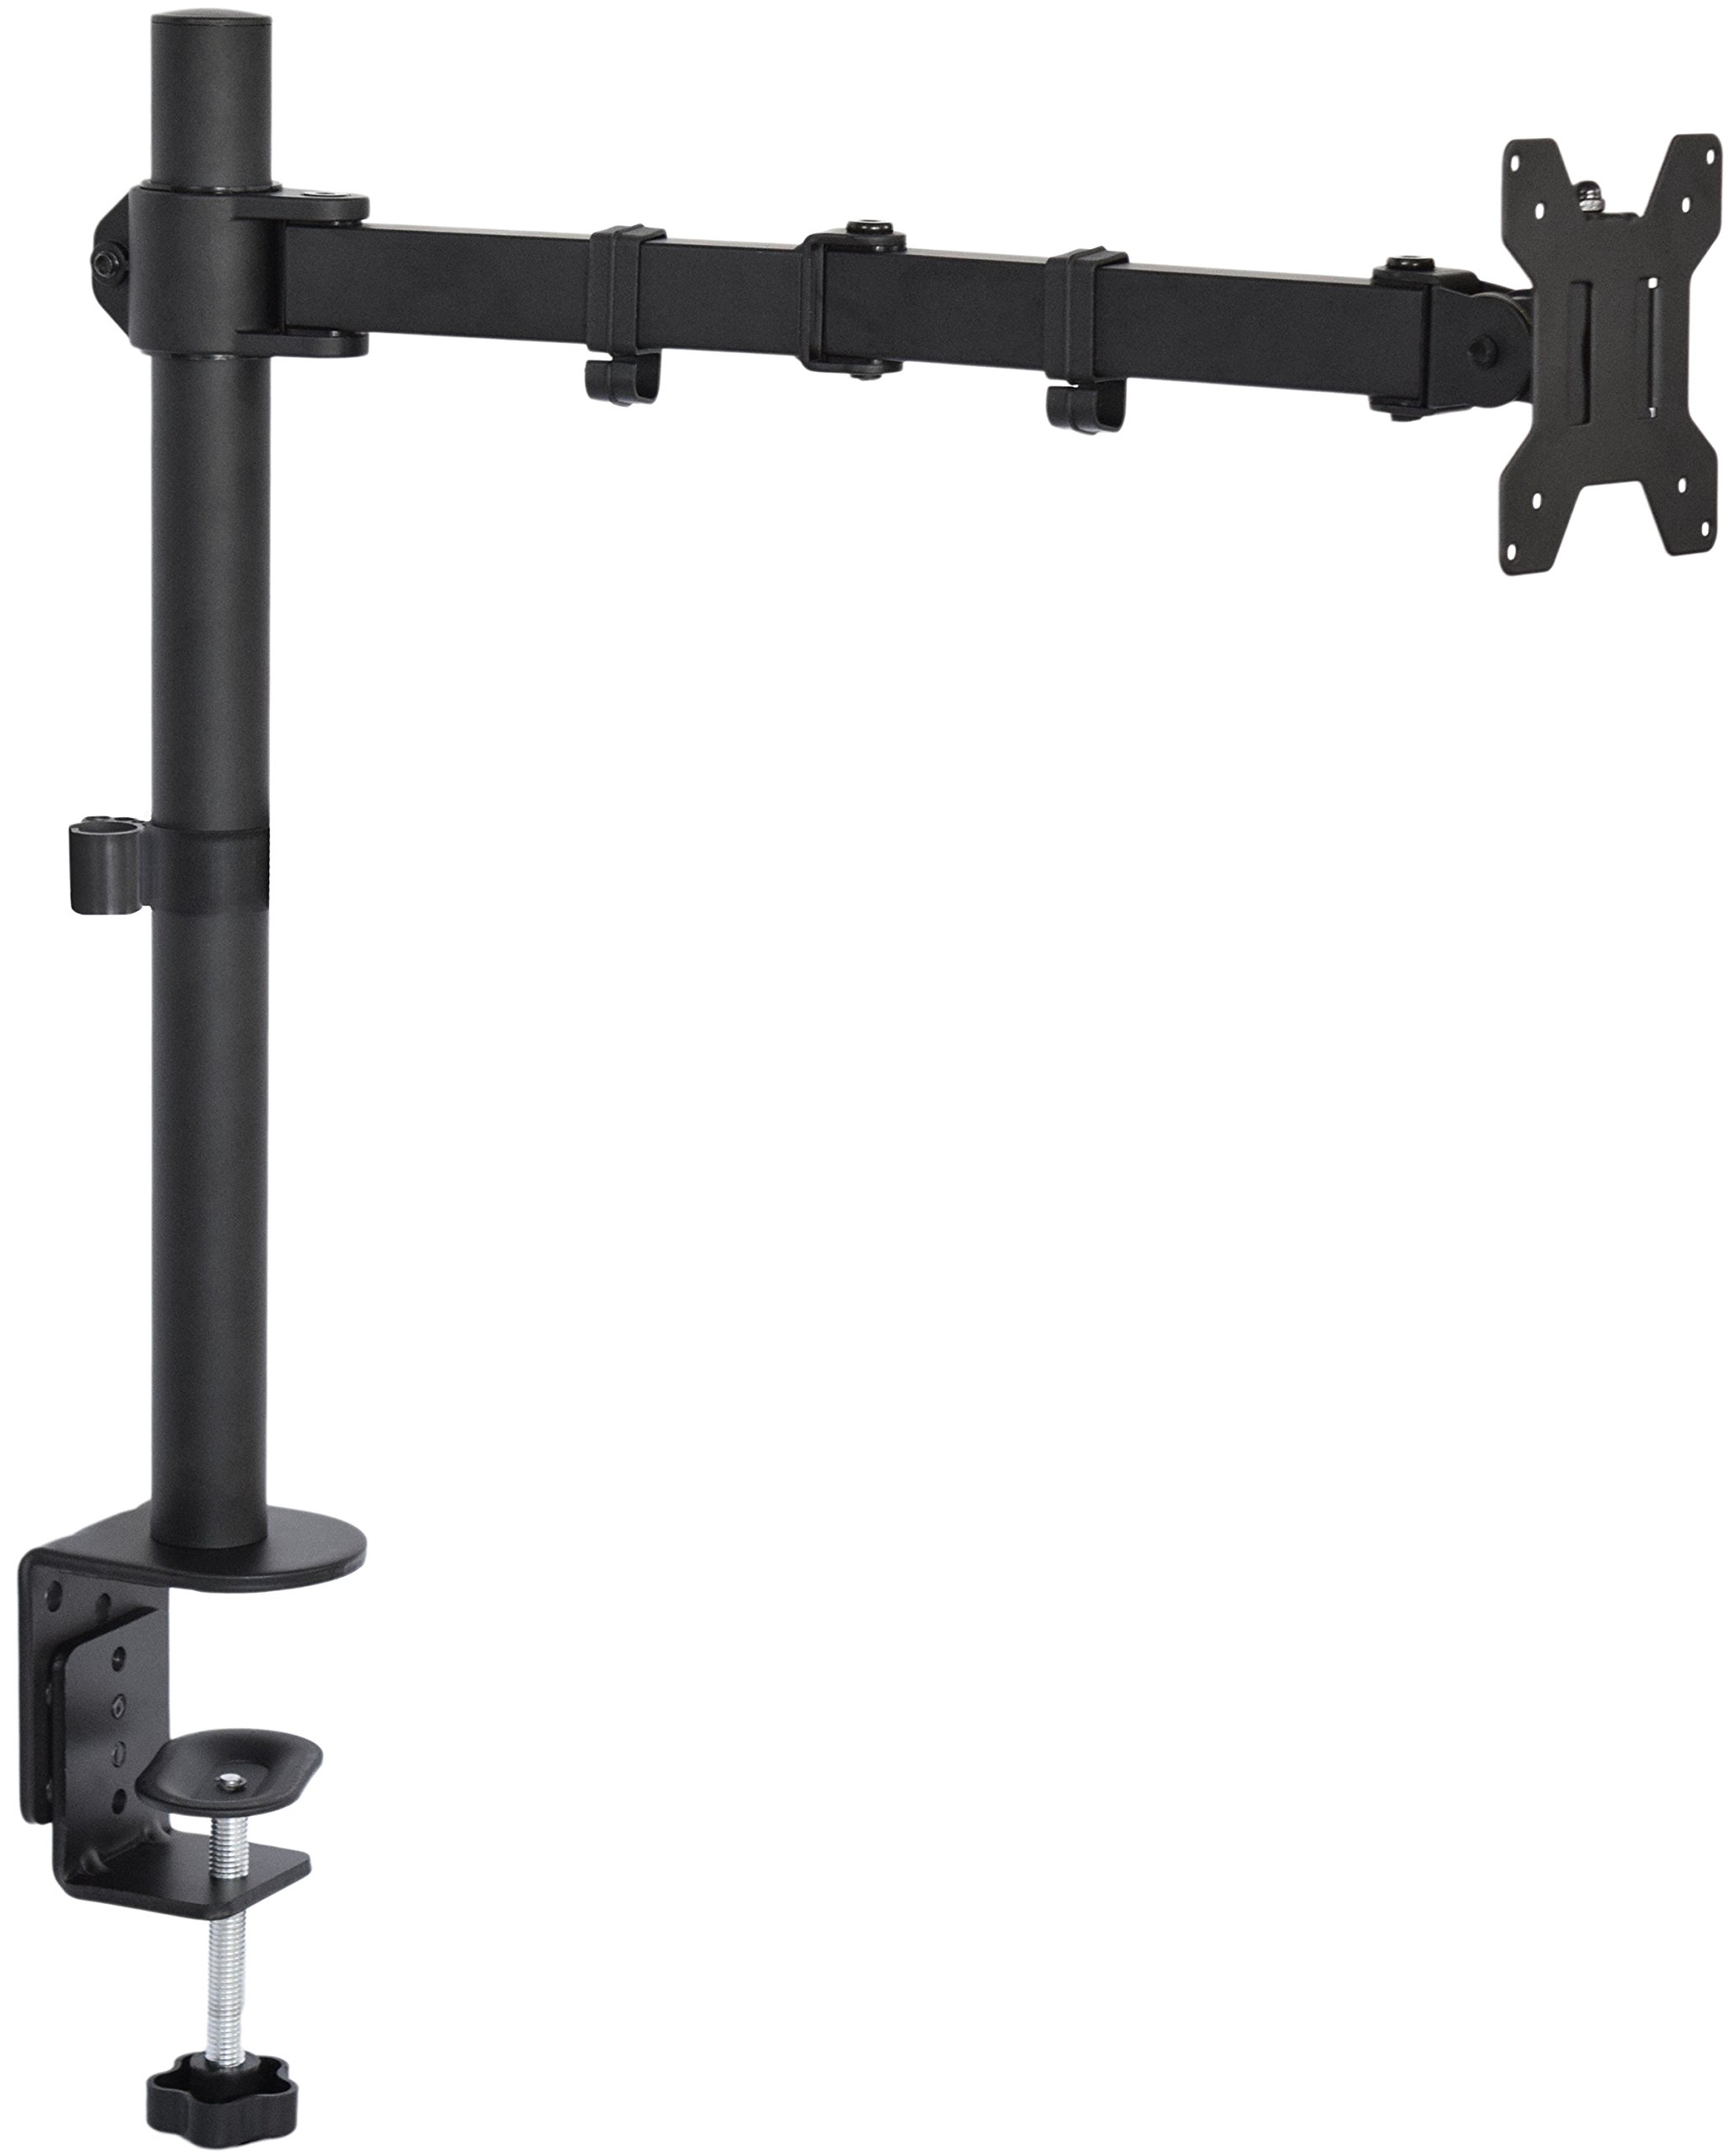 VIVO Single LCD Monitor Desk Mount Stand Fully Adjustable/Tilt/Articulating for 1 Screen up to 27'' (STAND-V001)